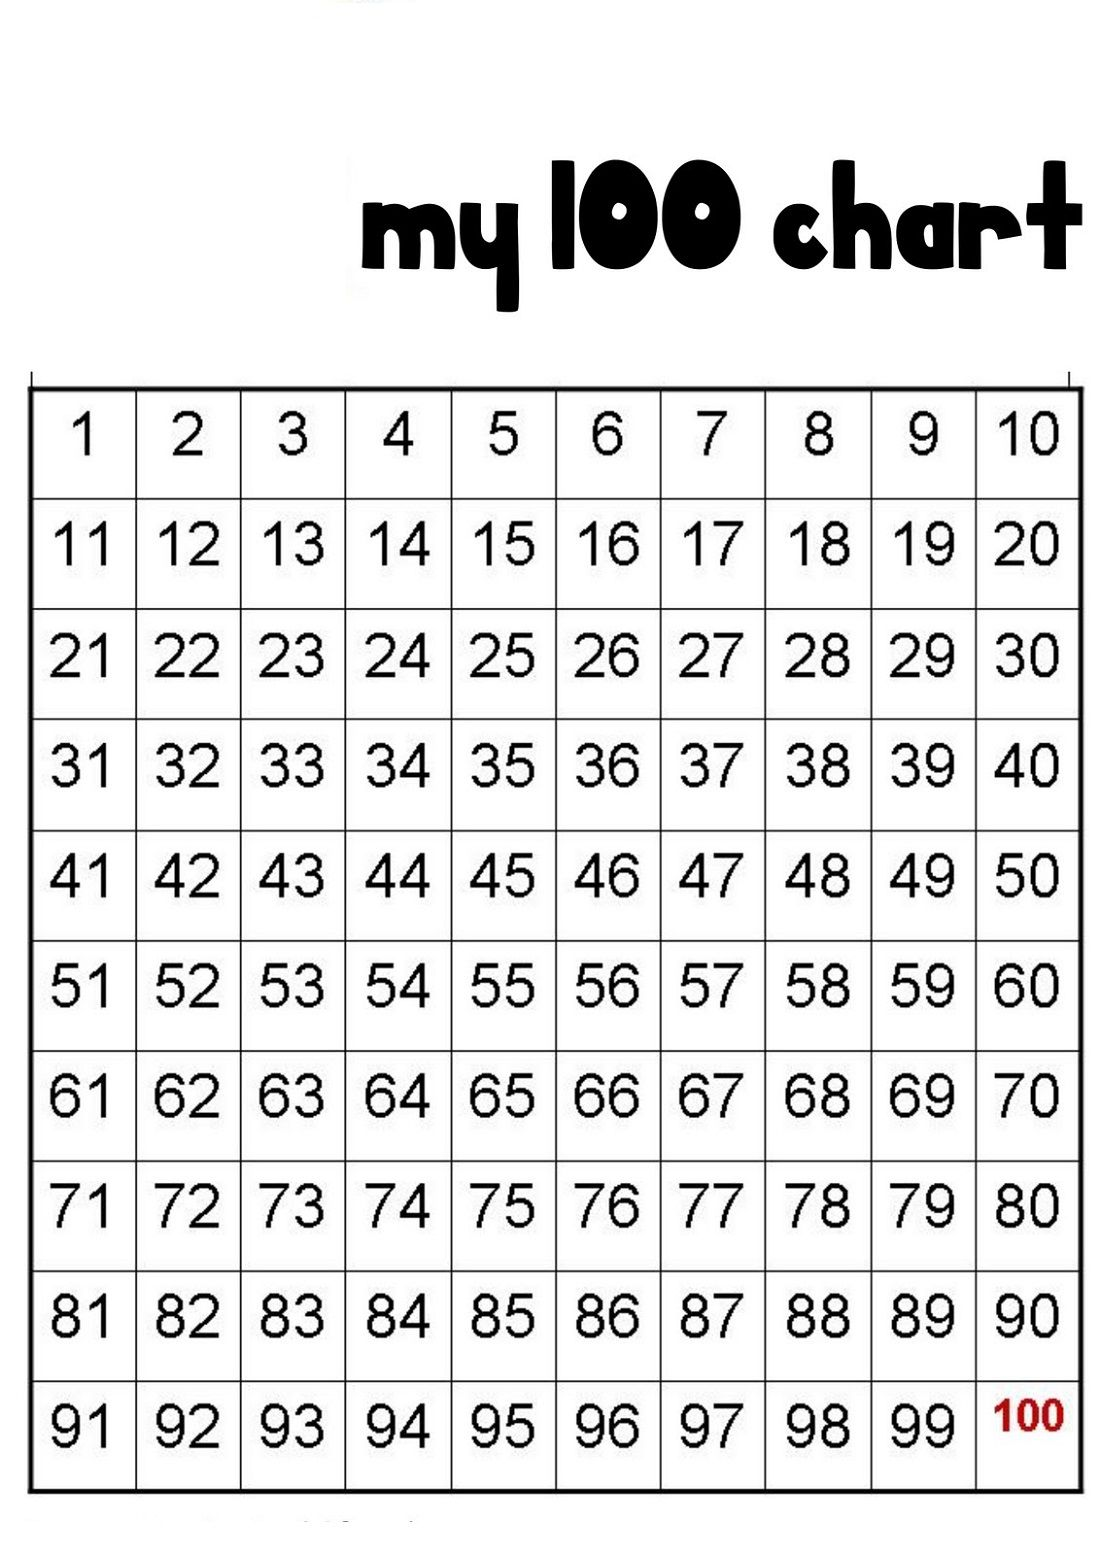 Obsessed image in 100 number chart printable